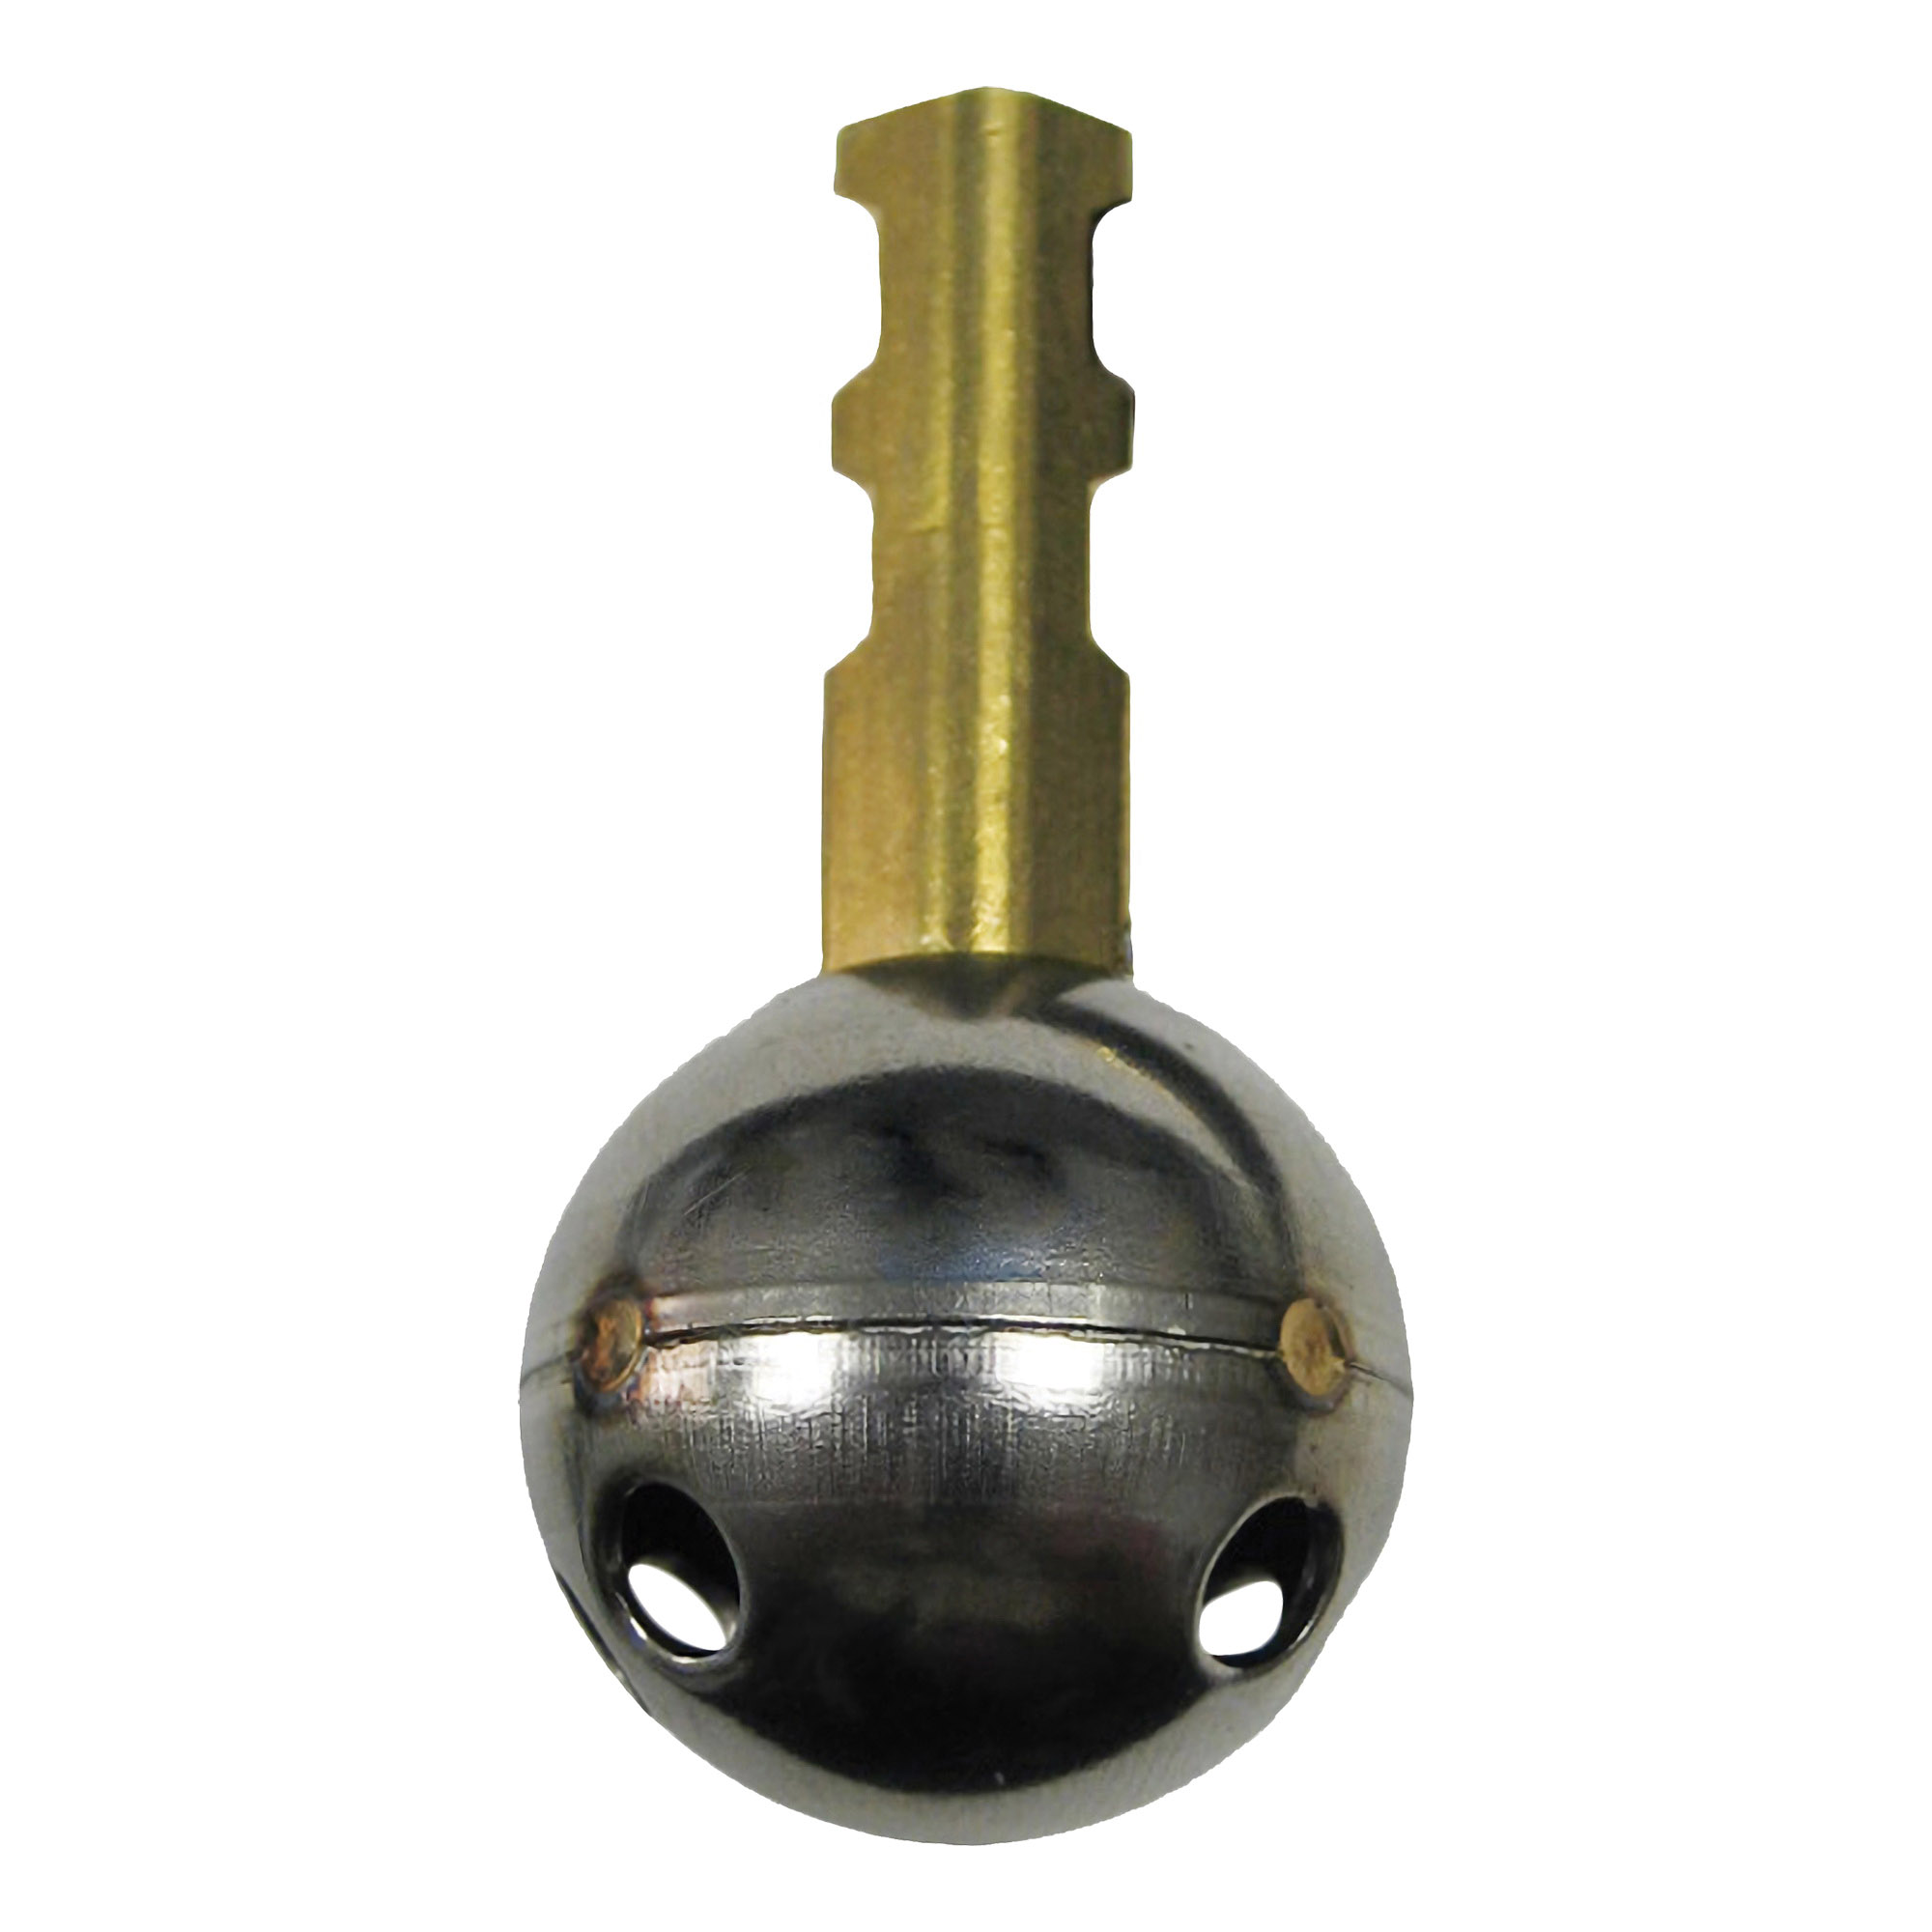 Kissler PB212S Faucet Ball, For Use With Delta®-Delex Single Lever Faucet Stems, Stainless Steel